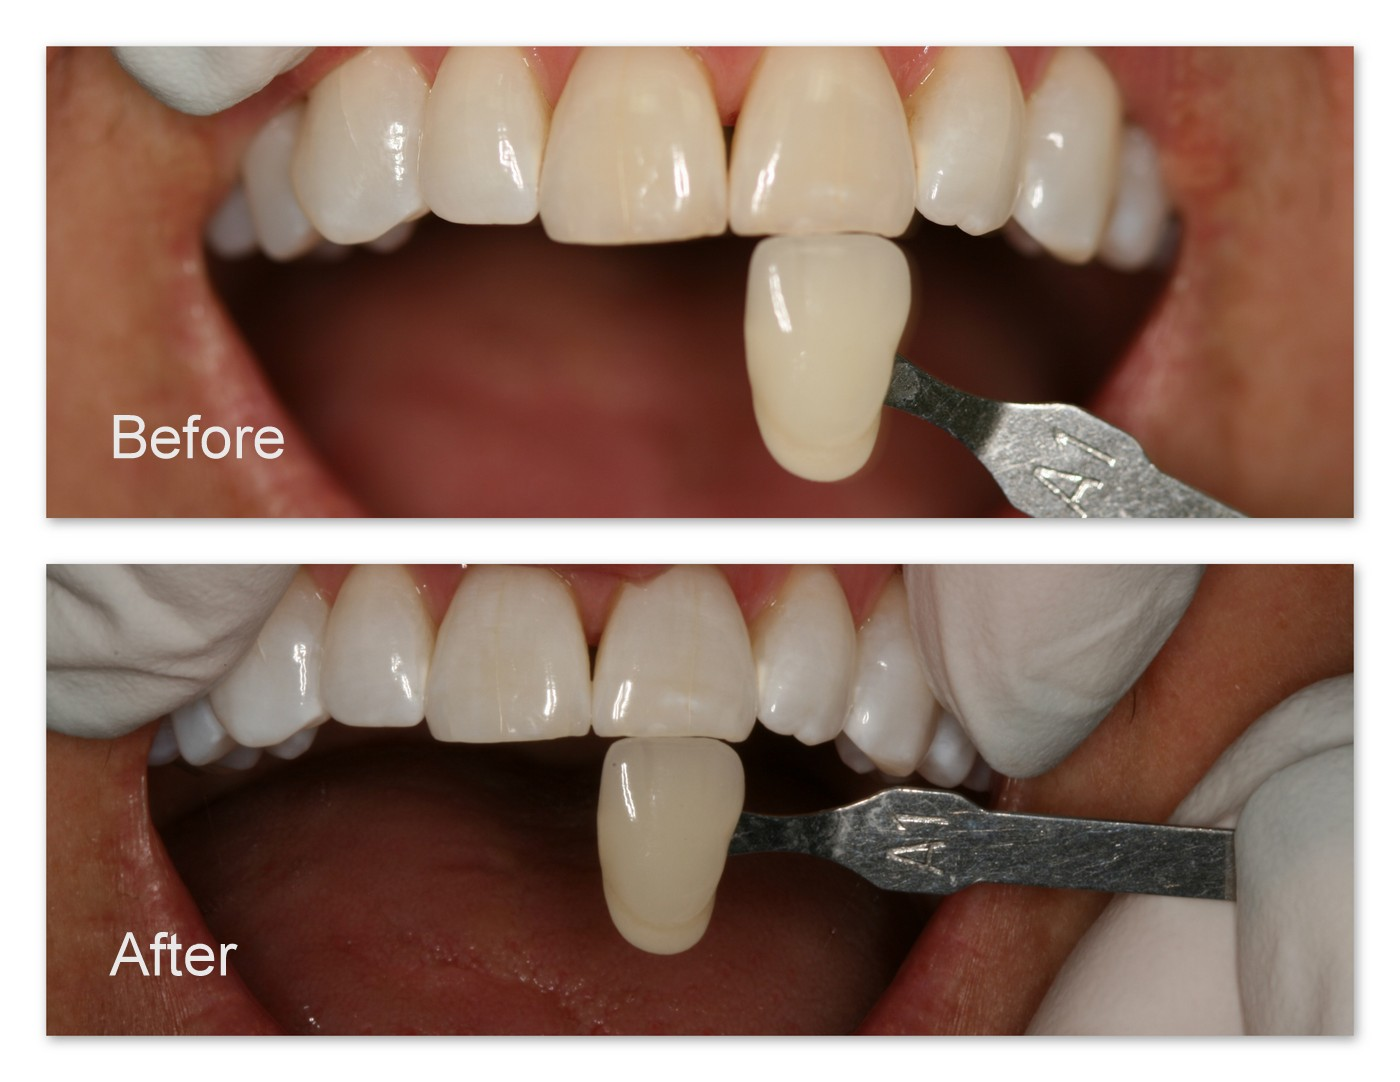 Before- Before Whitening. After- After Whitening. Notice the difference in the color of the teeth now and the shade tab.